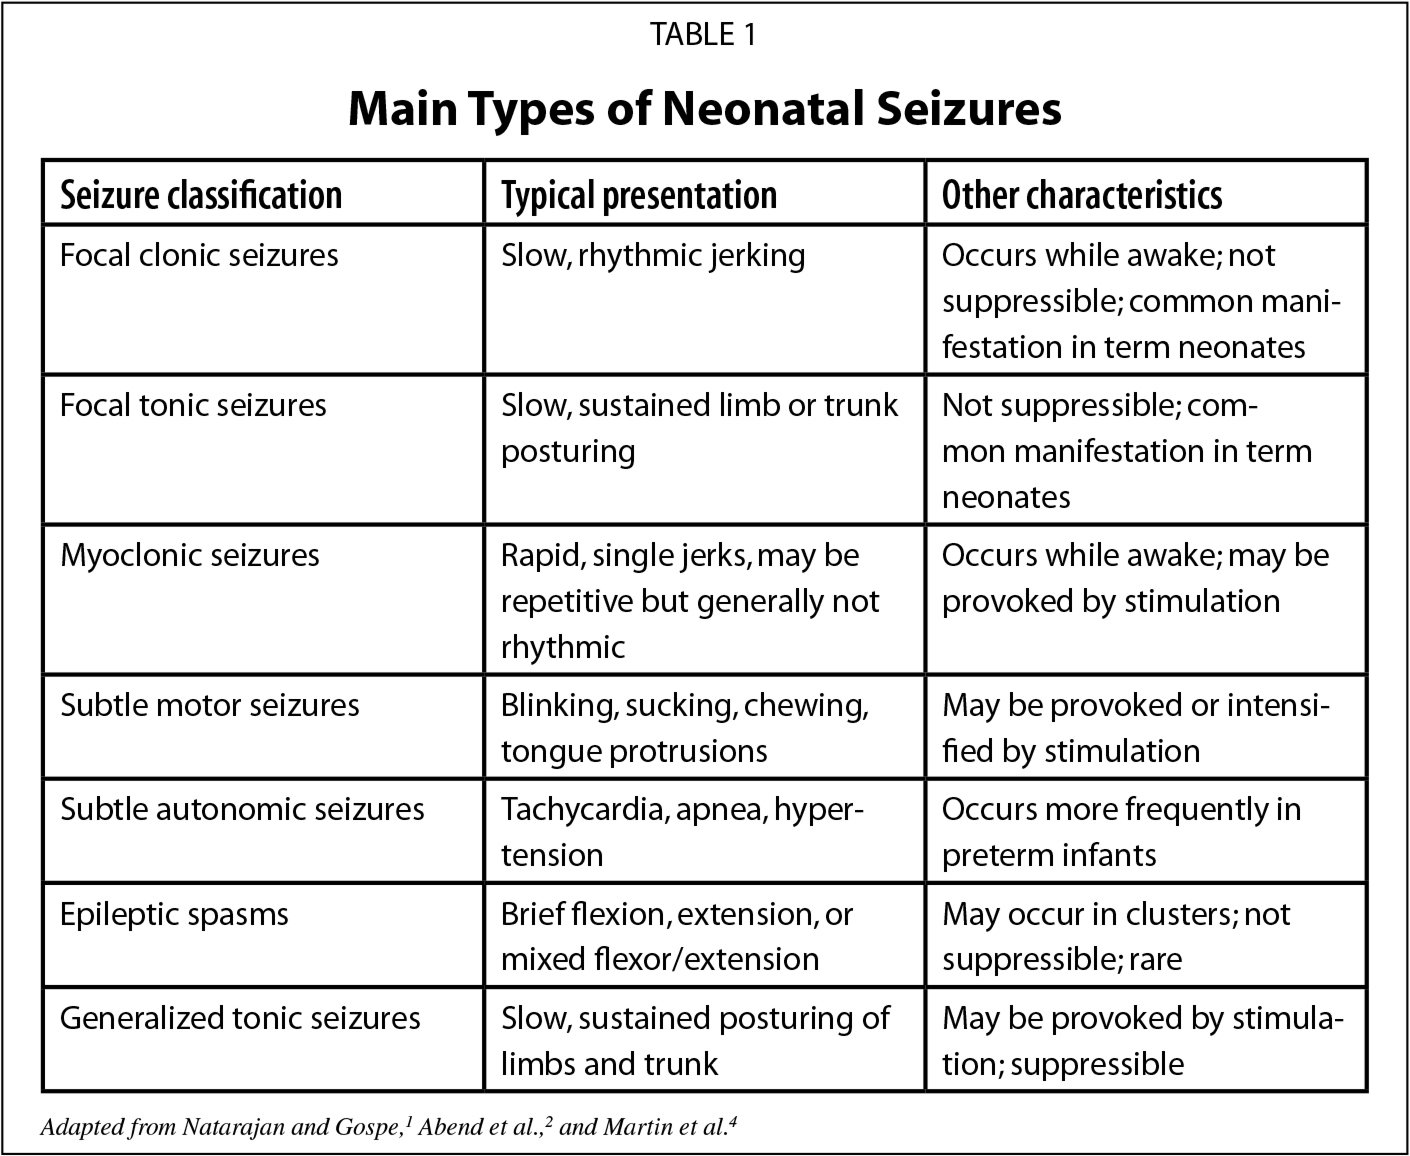 Main Types of Neonatal Seizures